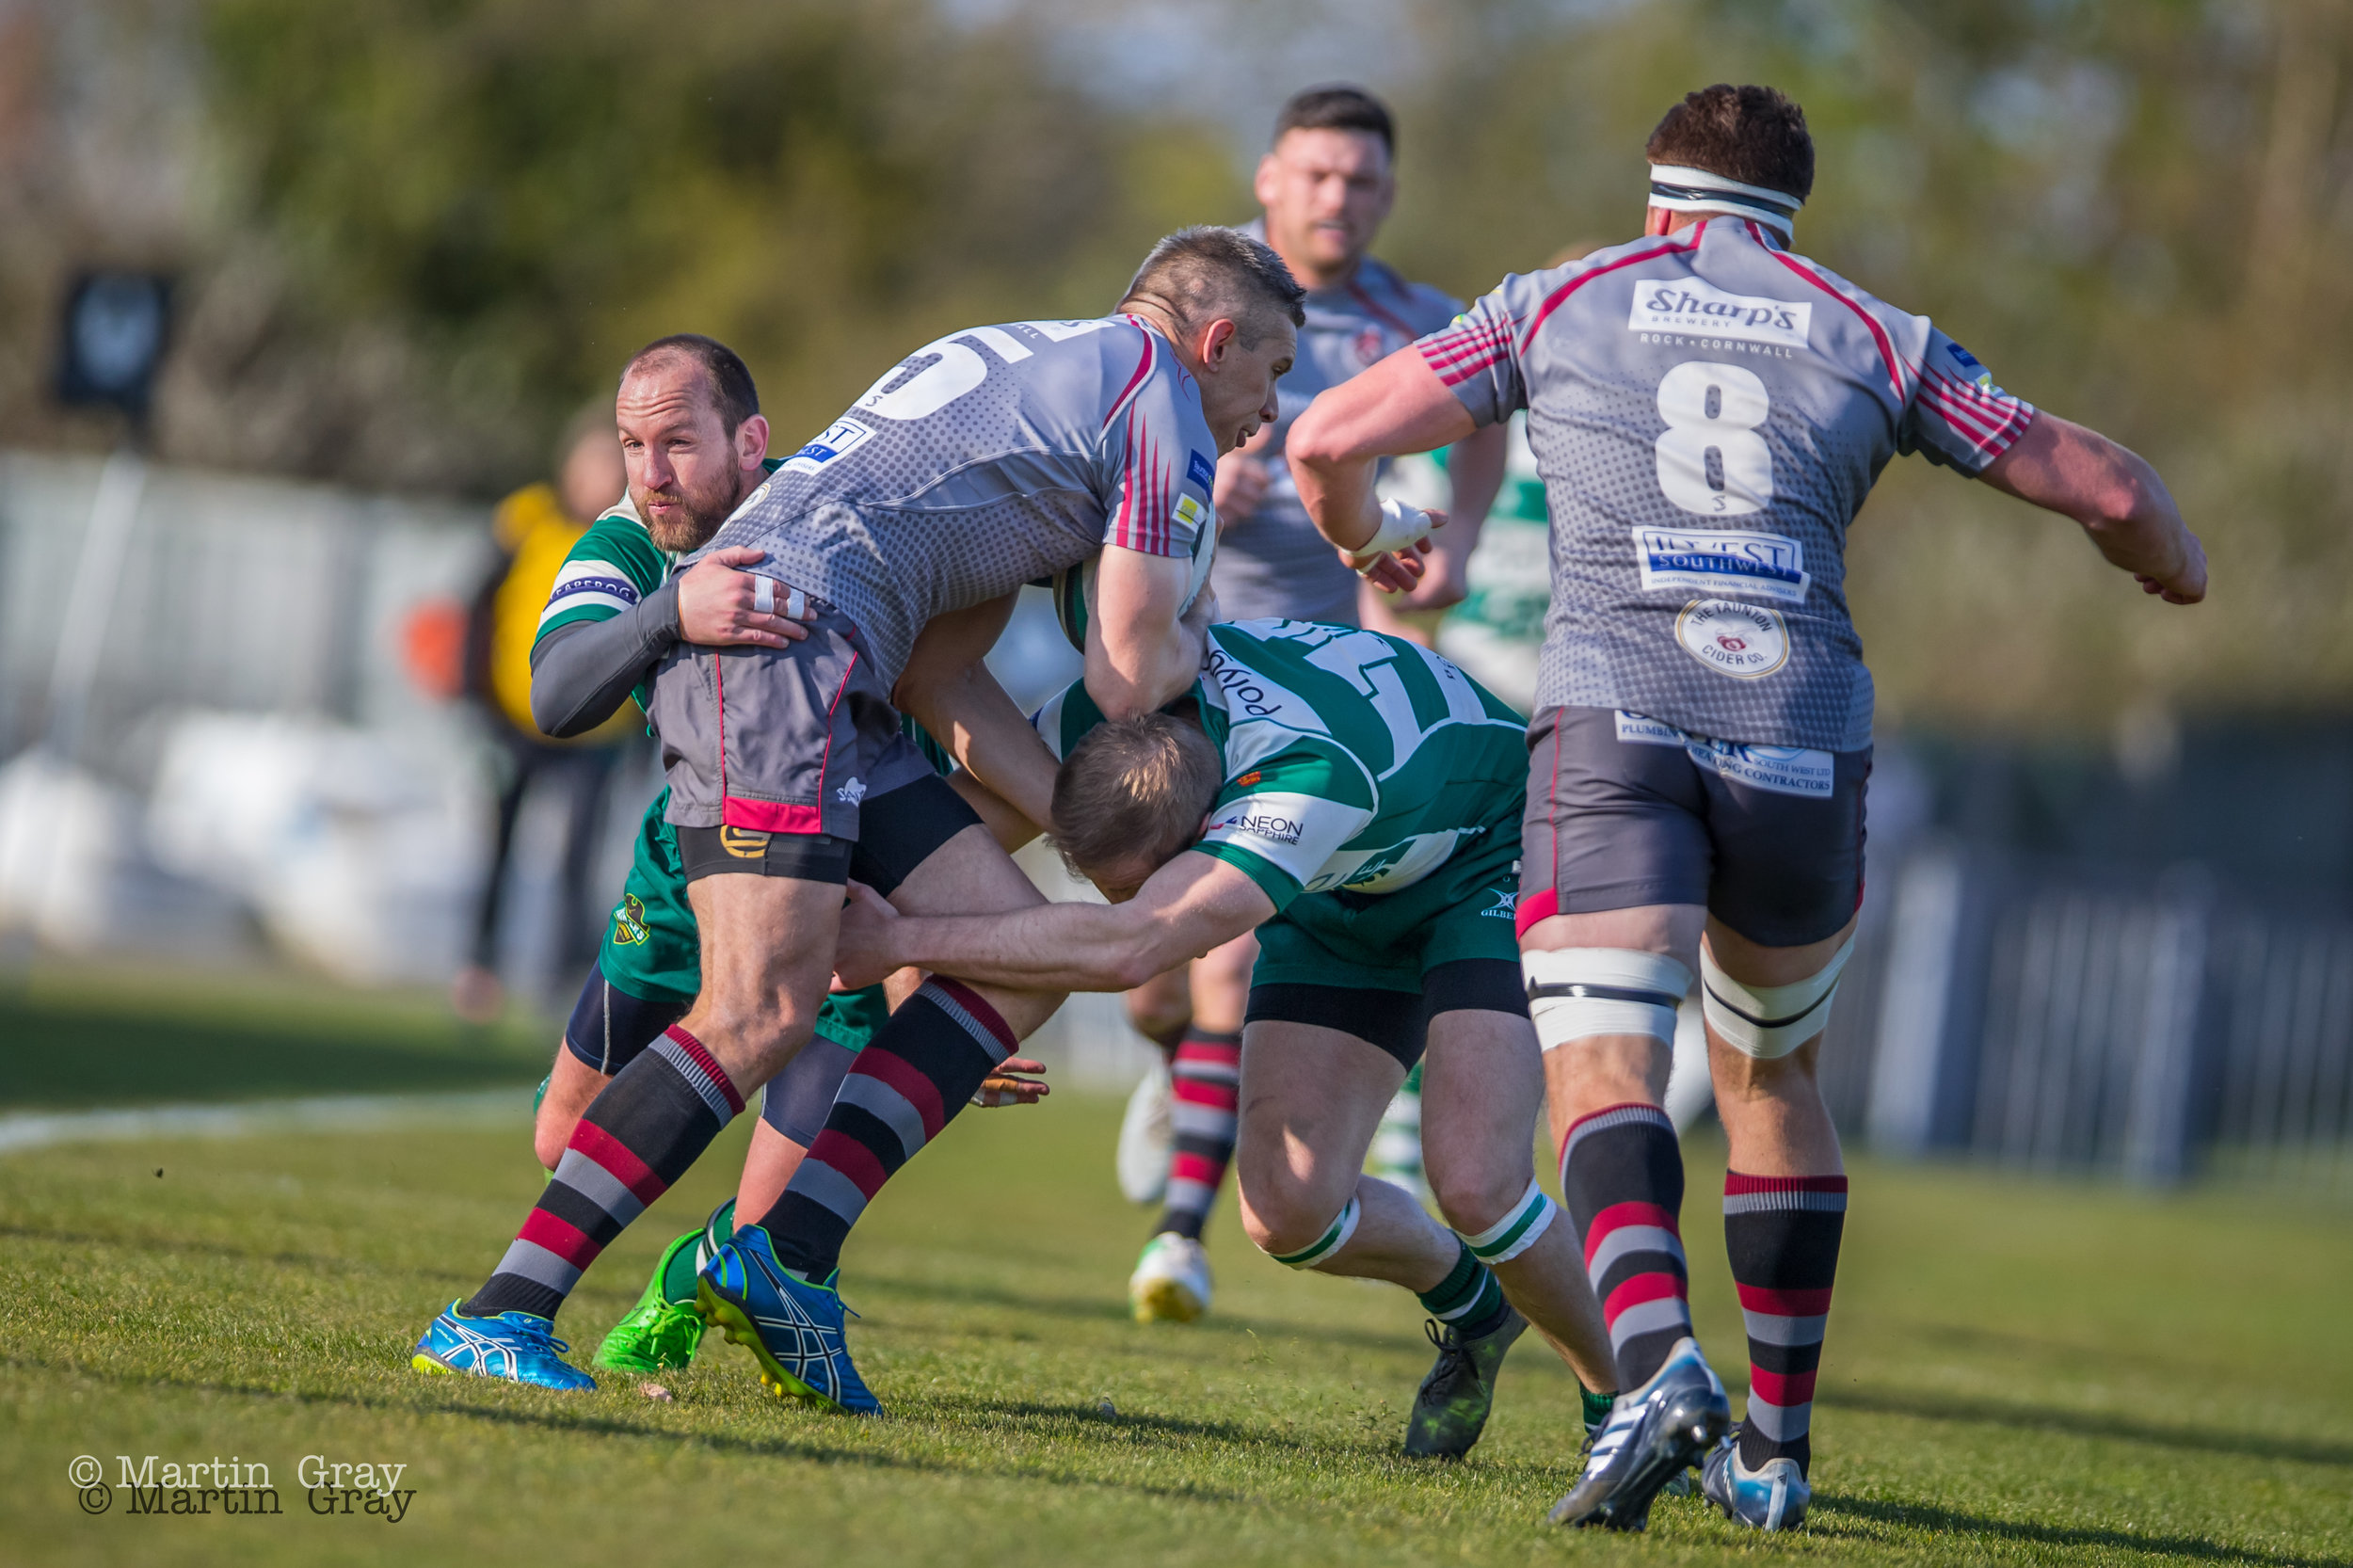 Guernsey Raiders v Taunton Titans played at Footes Lane April 13th 2019…. Enjoy!